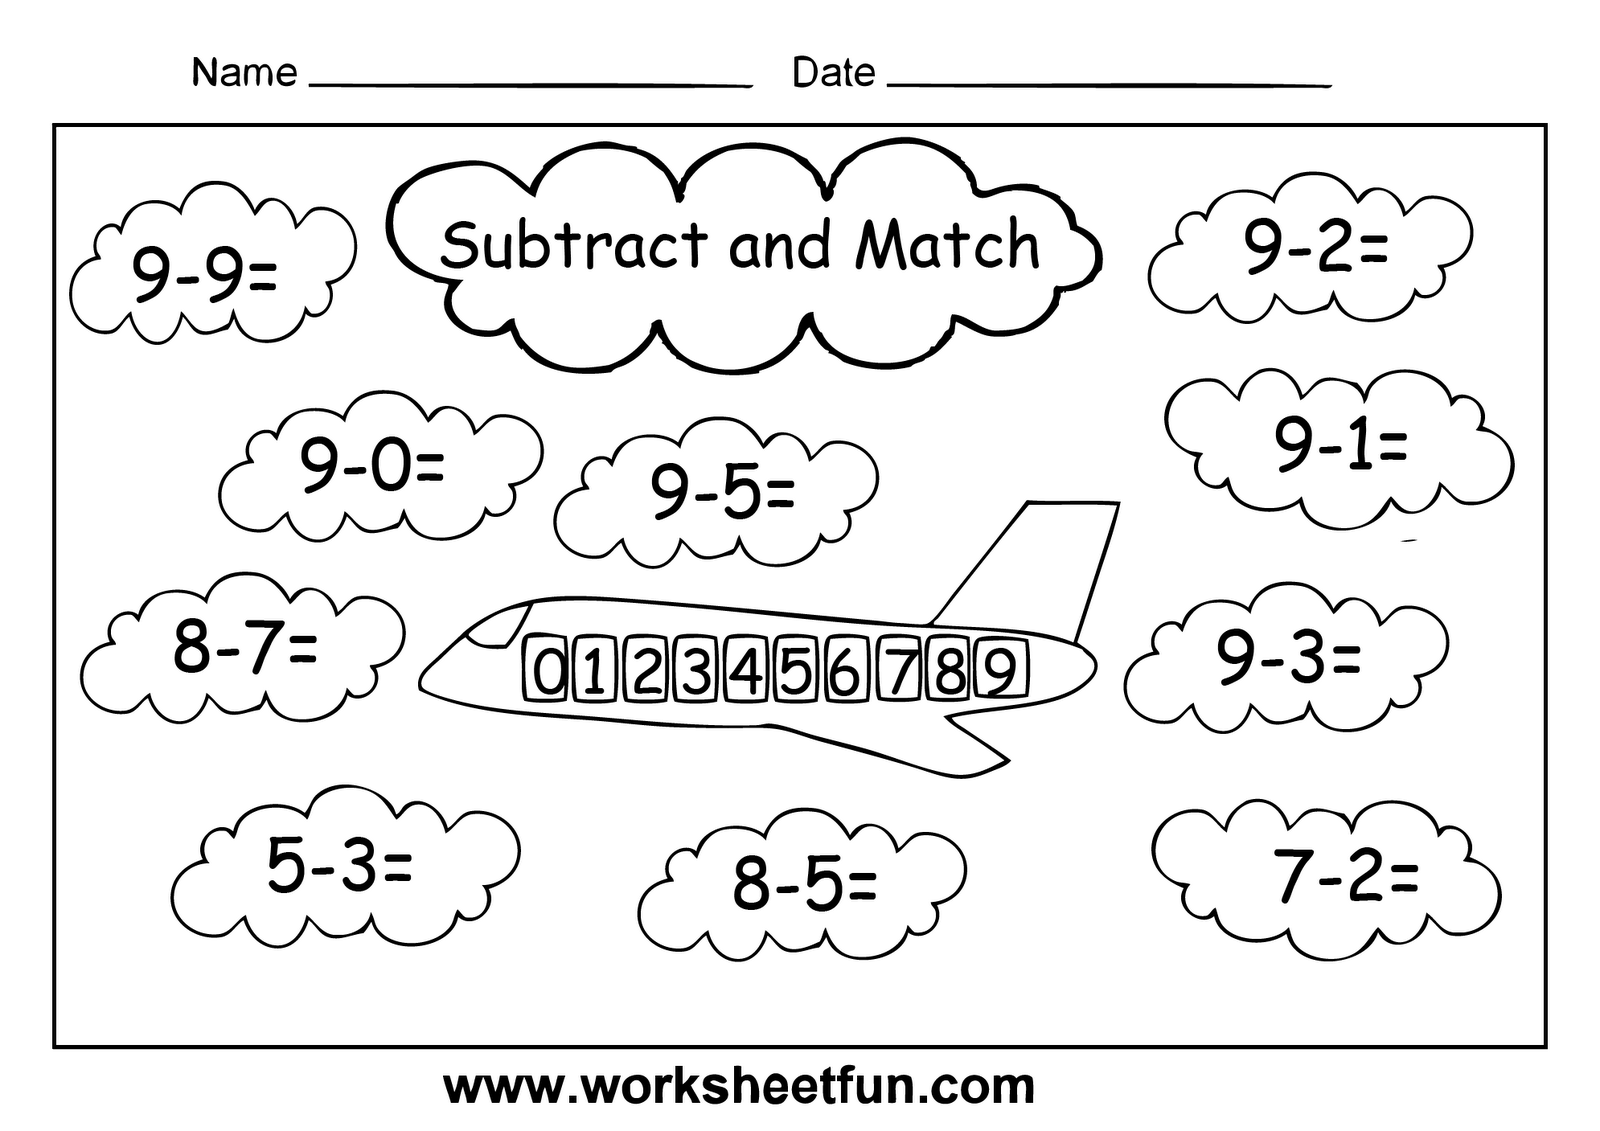 Worksheet Free Printable Math Worksheets Grade 1 1000 images about printable math worksheets on pinterest activities learn online and fractions